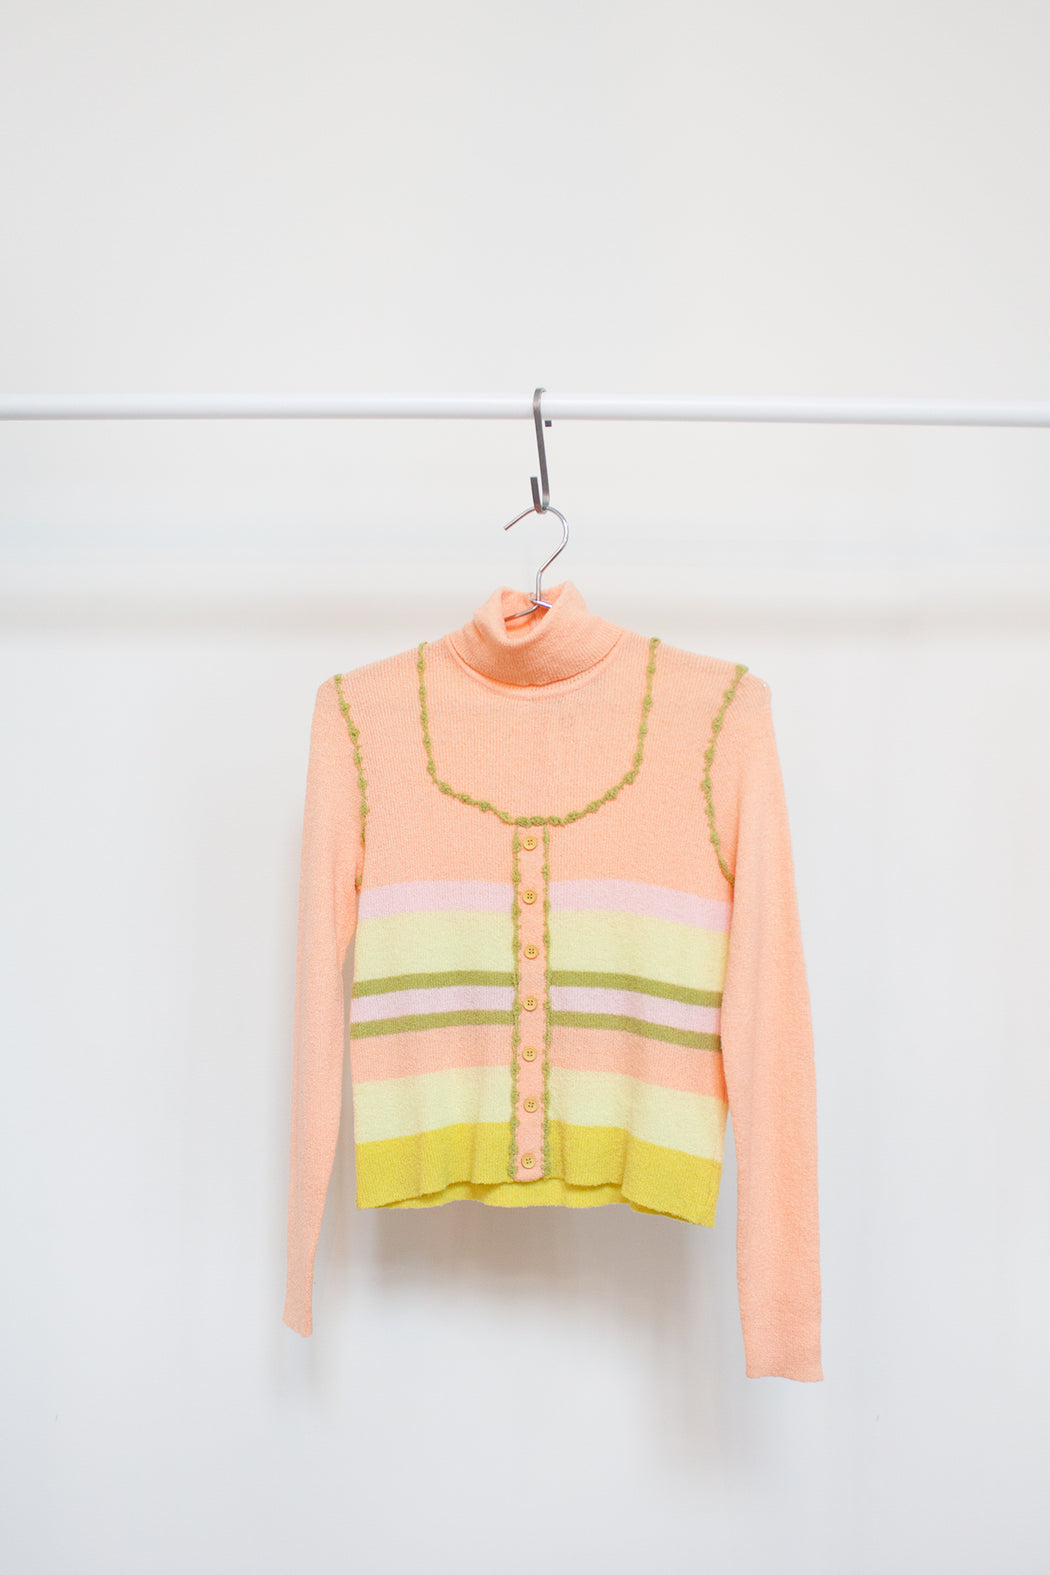 Vintage Sherbet Turtleneck | Hazel & Rose | Minneapolis, MN